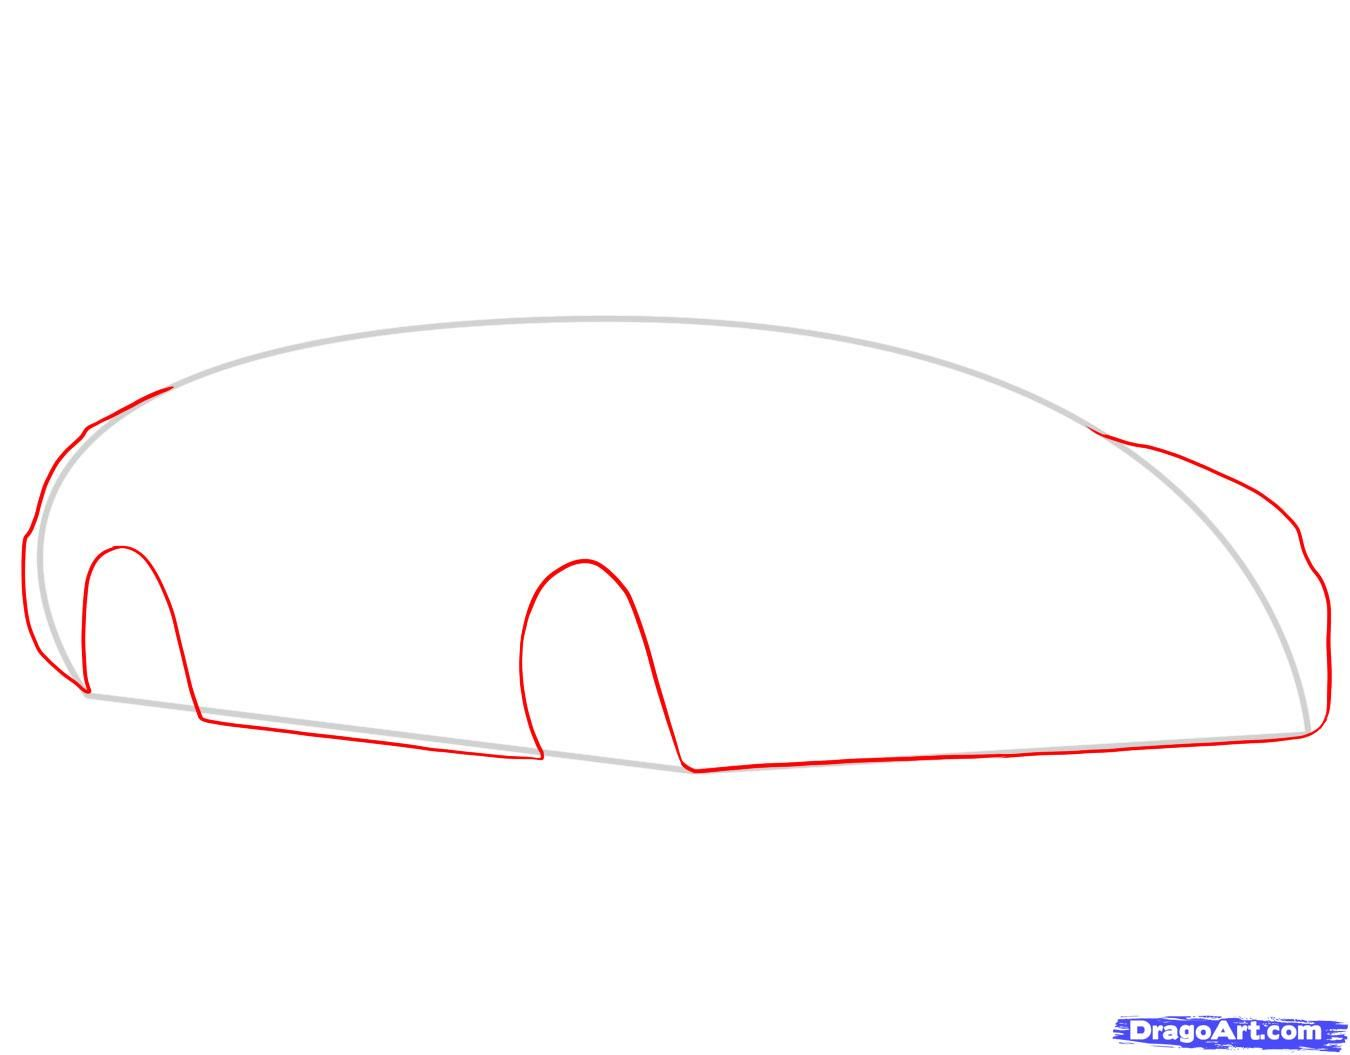 How to draw the Camaro car step by step 4